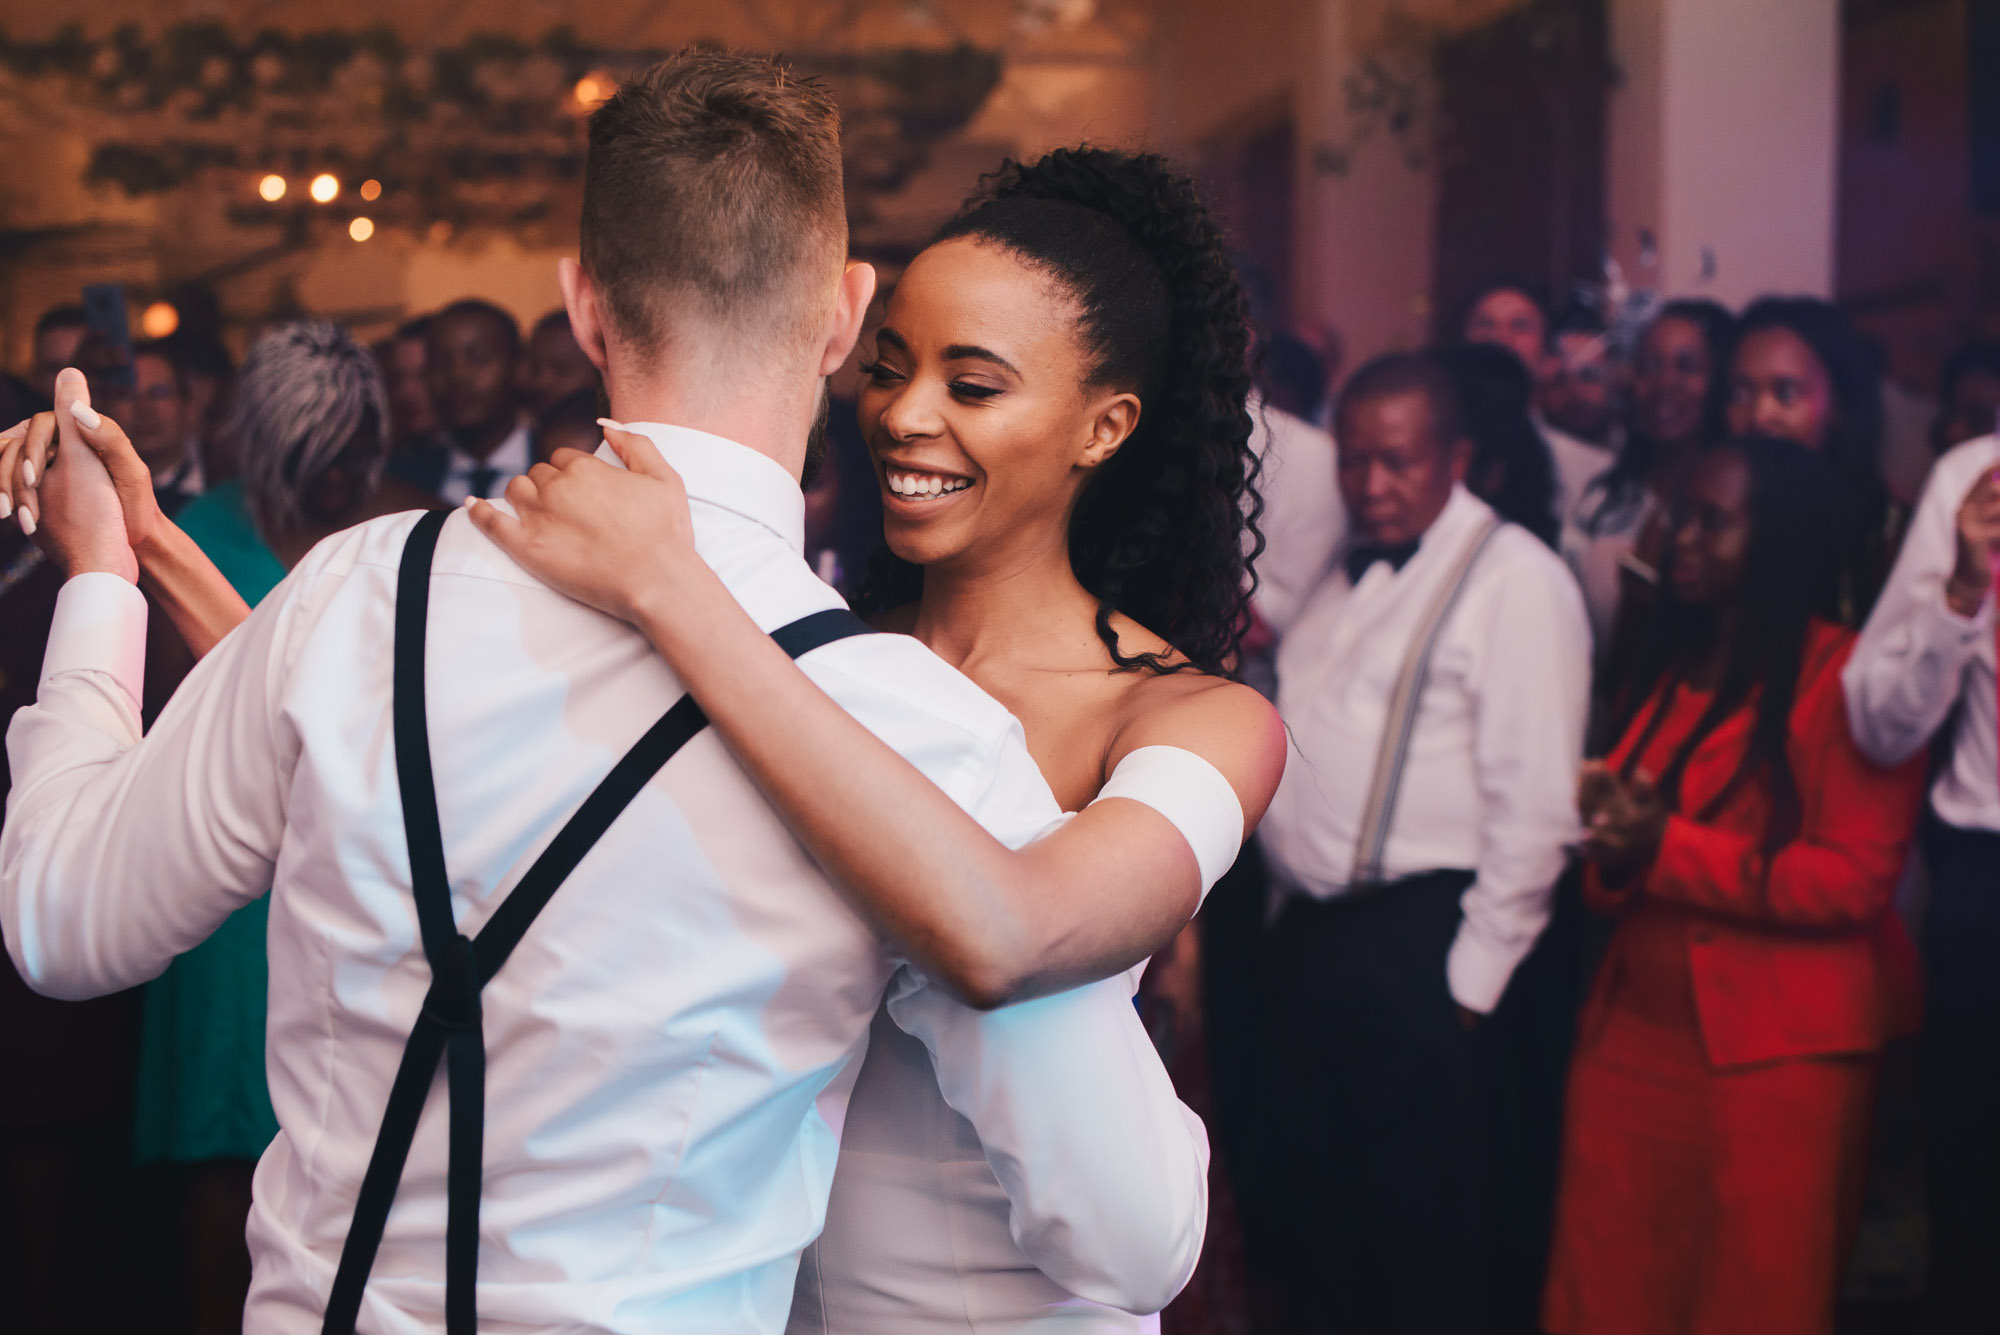 Zama & Ben Cape Town Wedding Photos-959.jpg